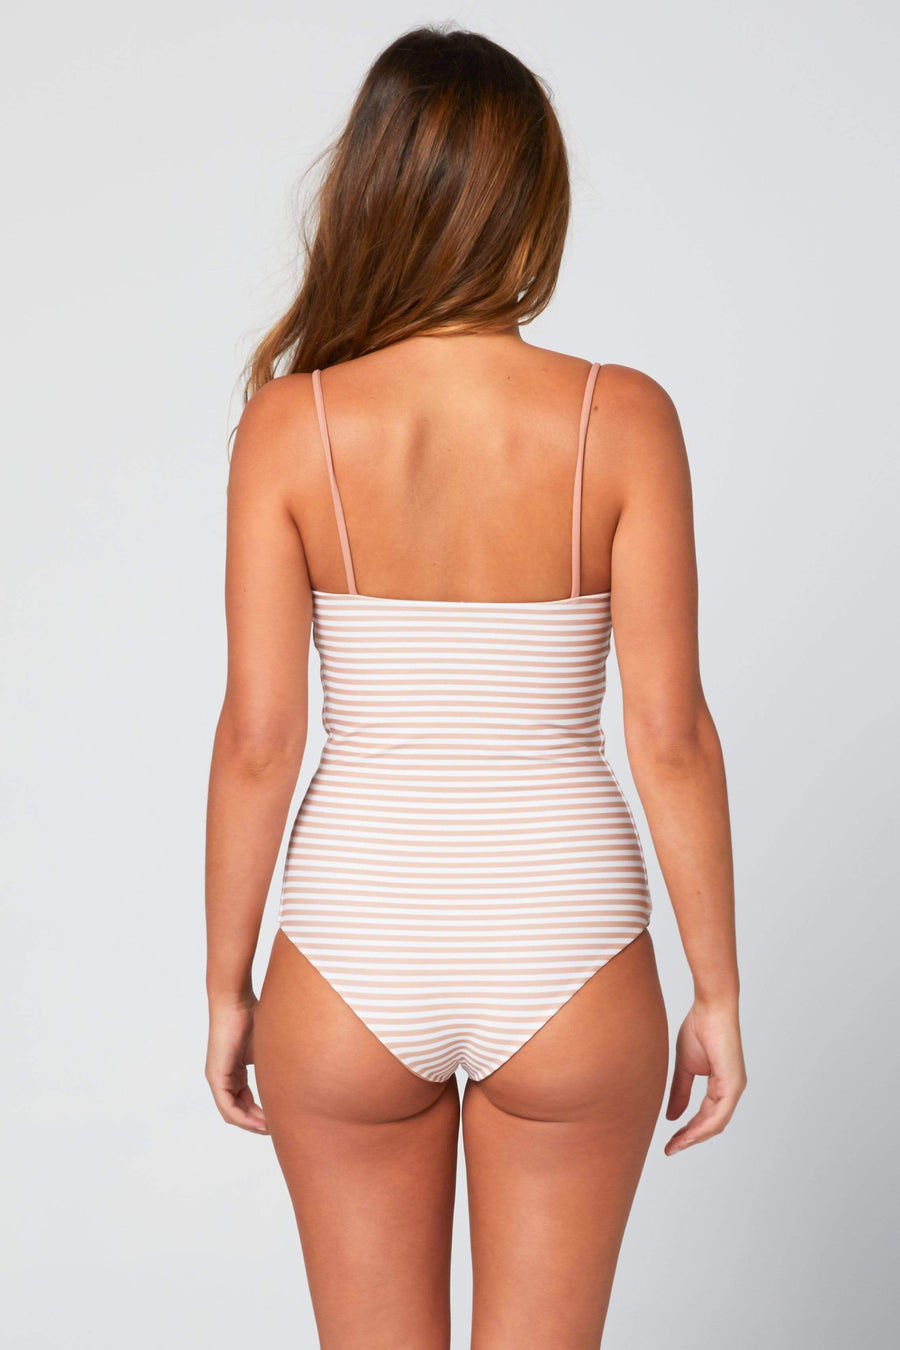 Aloé Swimwear One Piece ANTIGUA ONE PIECE IN CREAM BATH